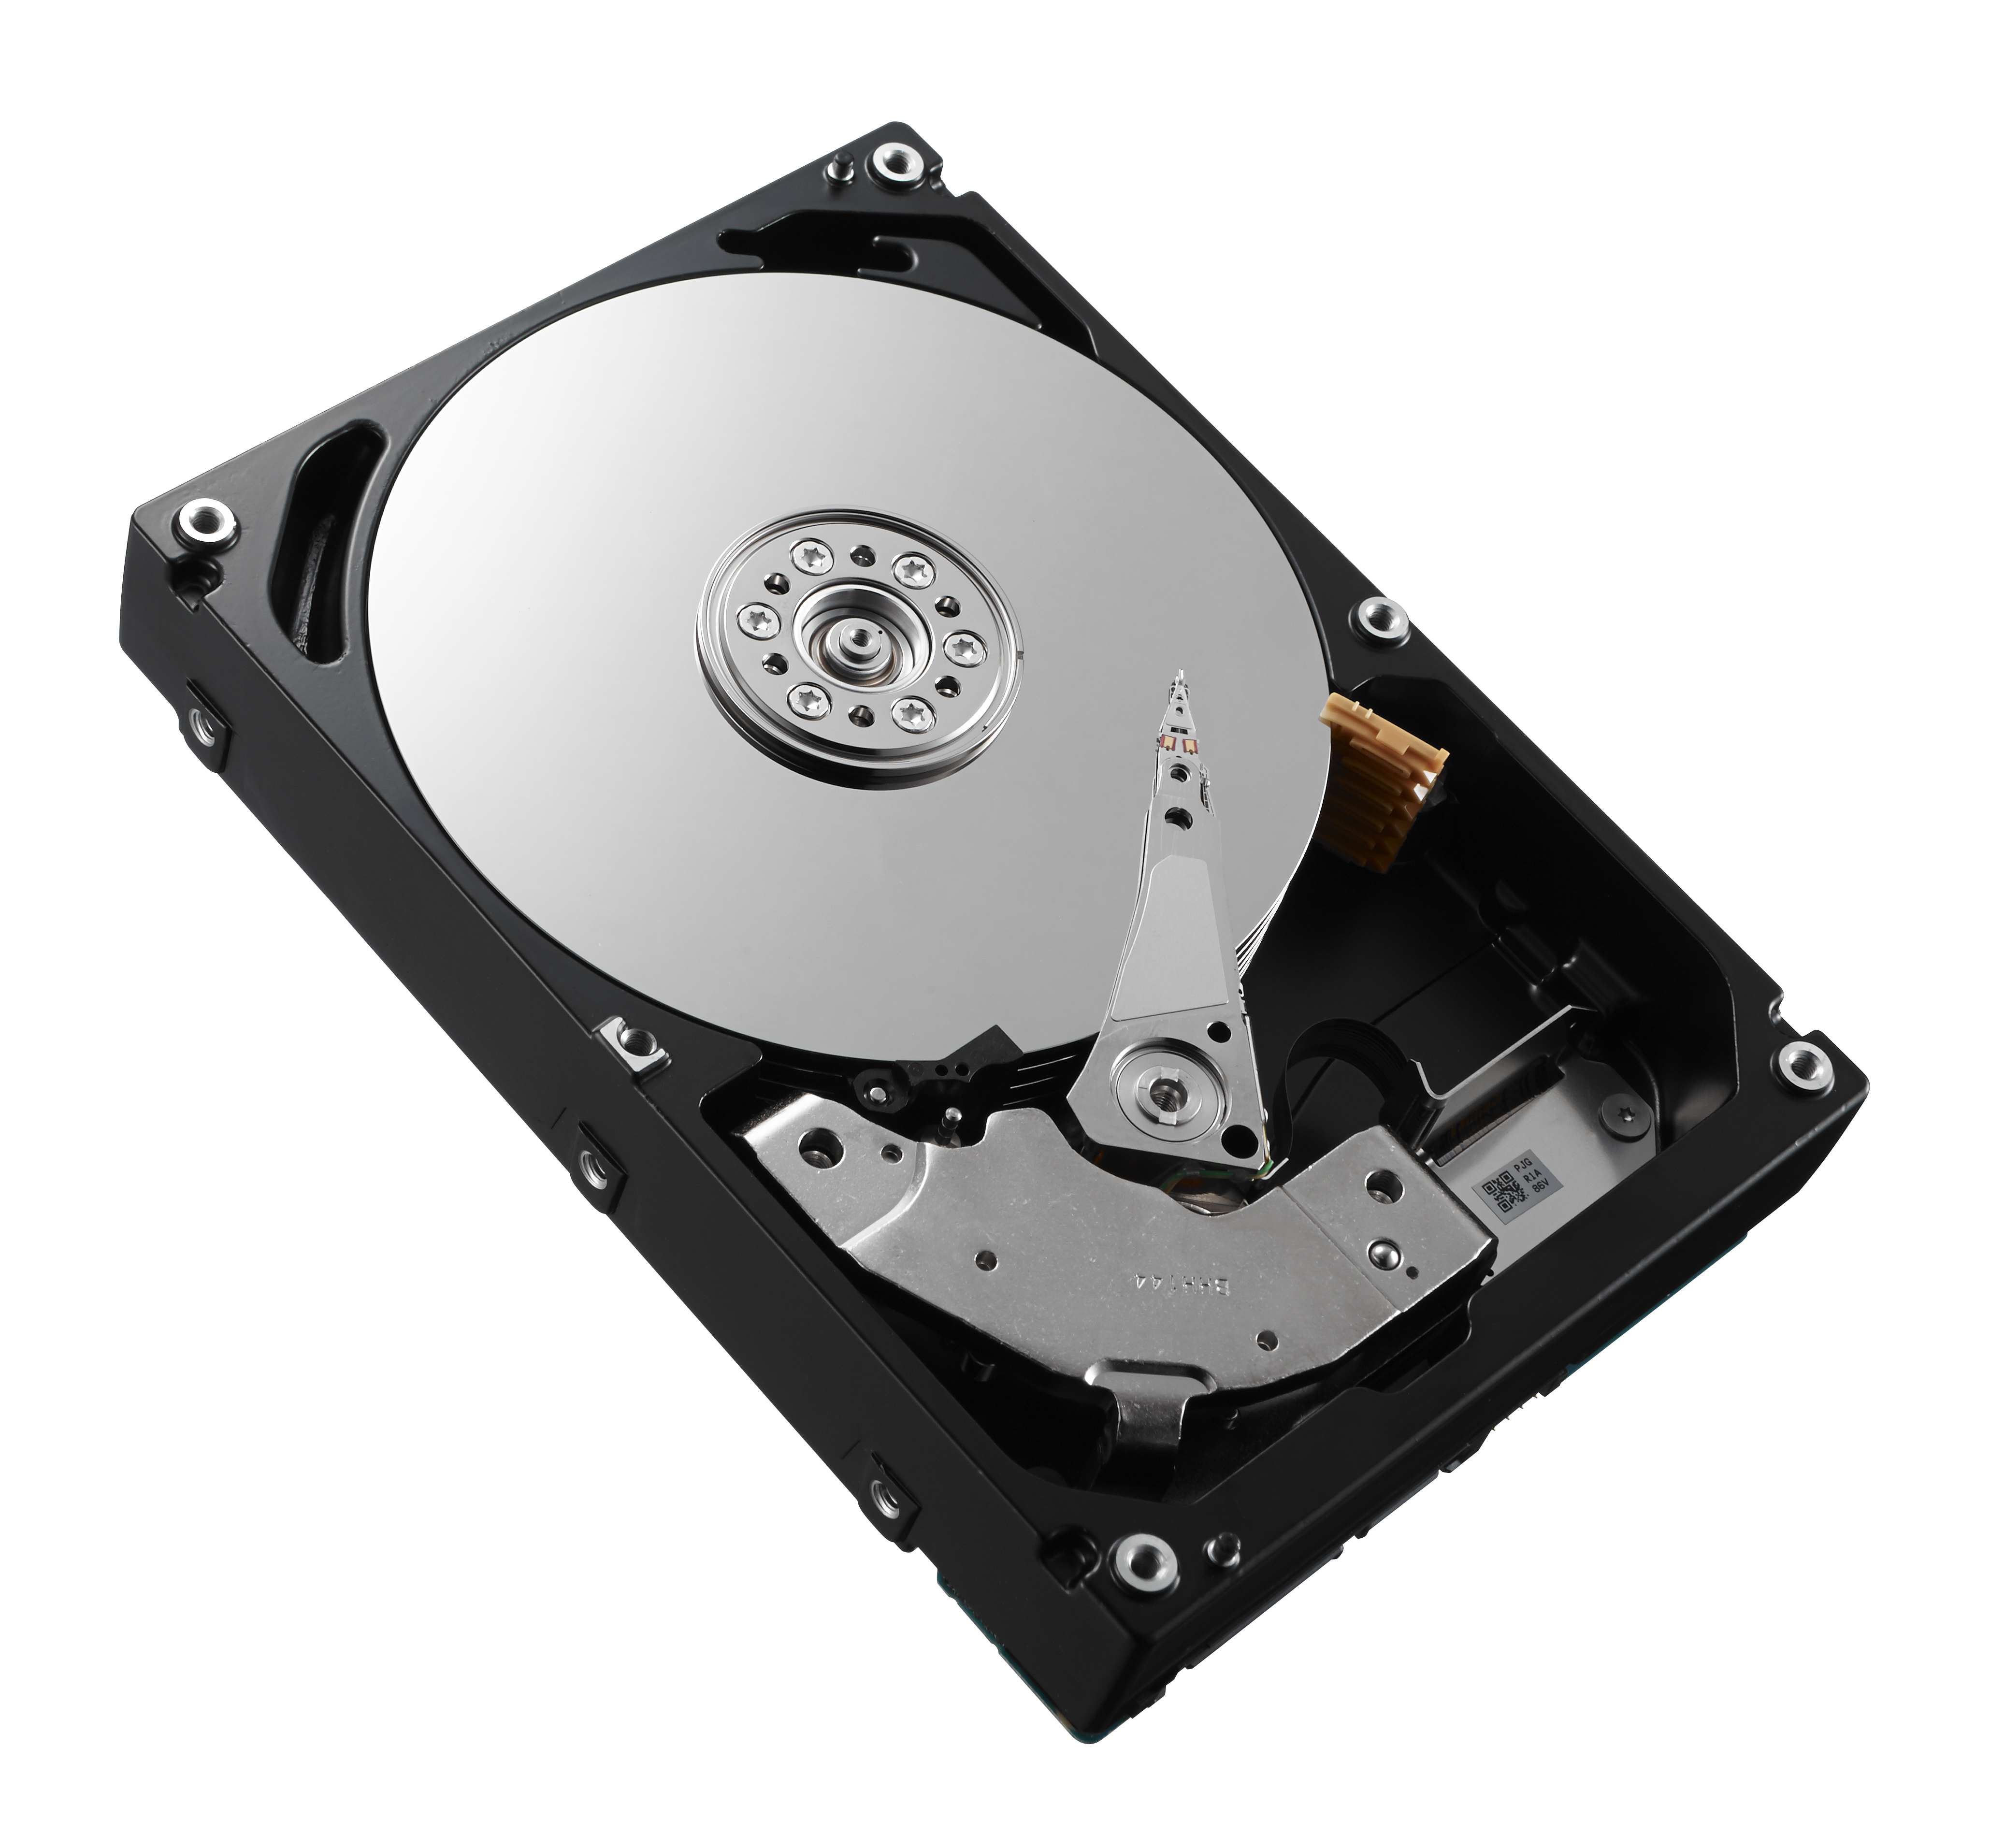 0HK1XN DELL 600Gb 15K 3.5 6G SAS HDD Refurbished with 1 year warranty